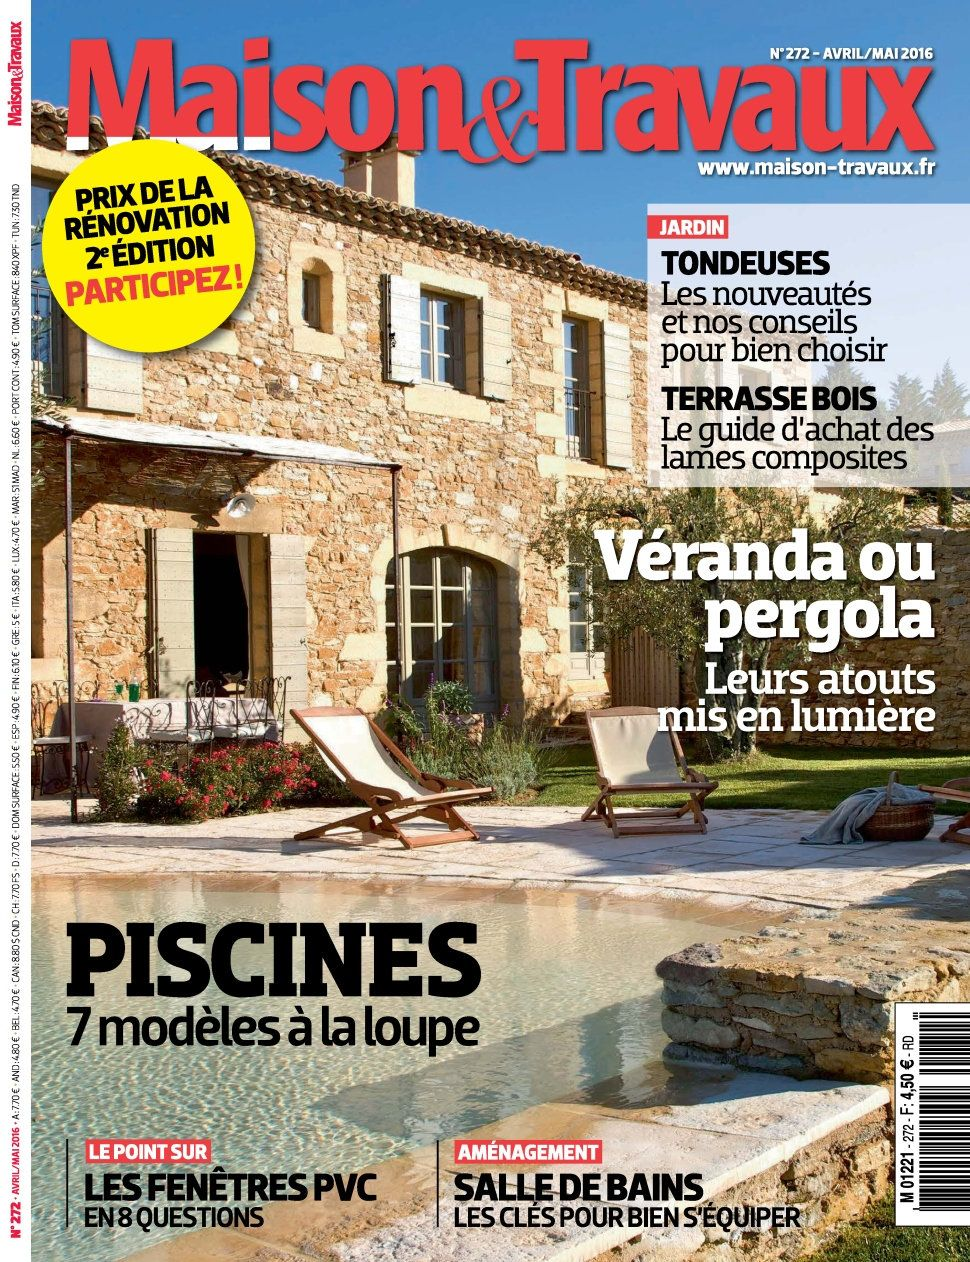 maison & travaux may 2016